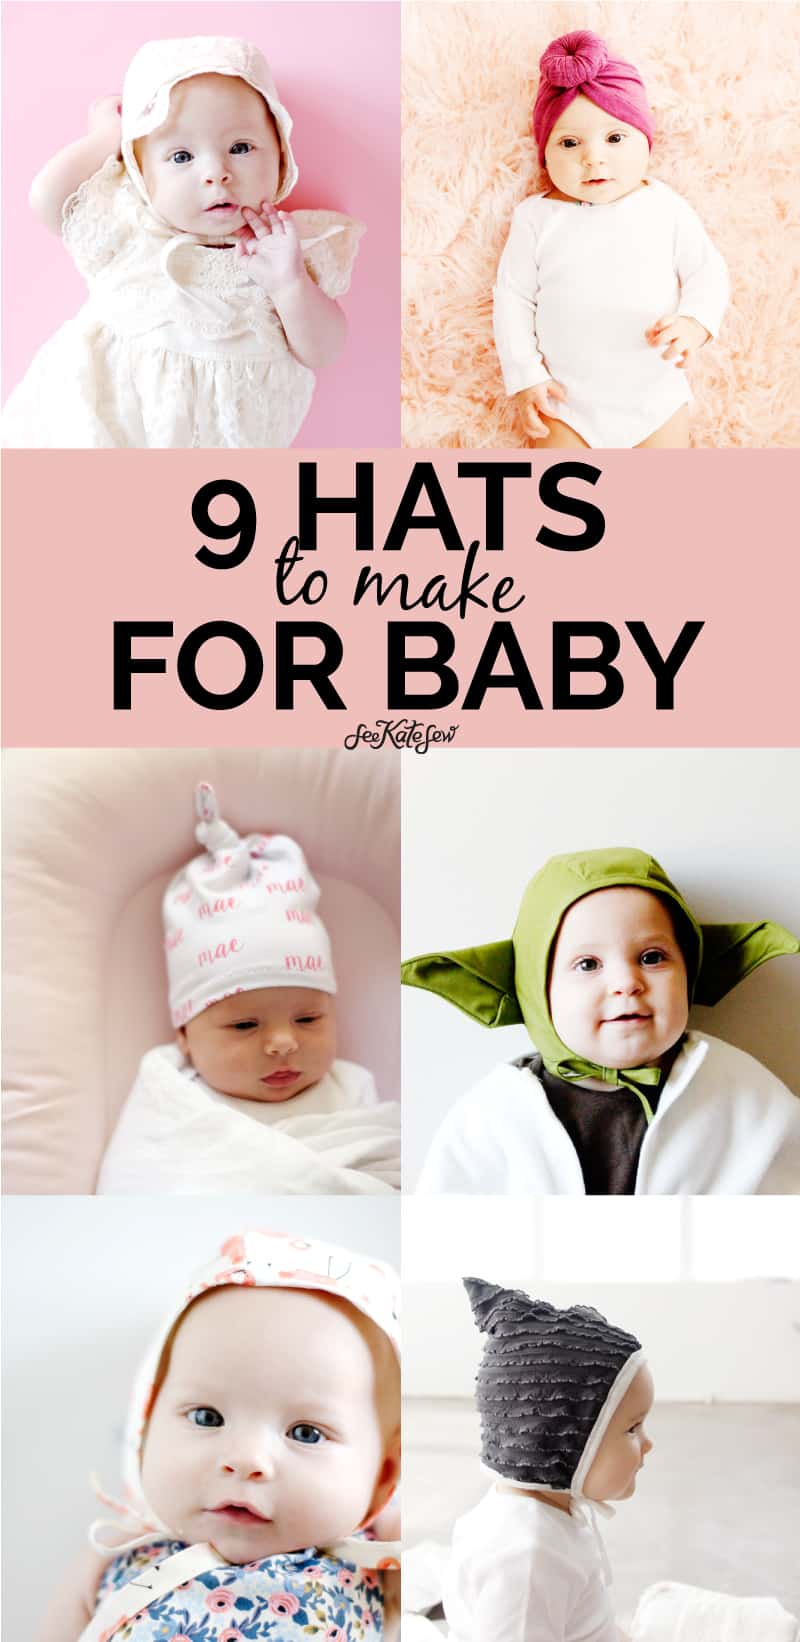 9 baby hats to make | Cute hats to sew for baby